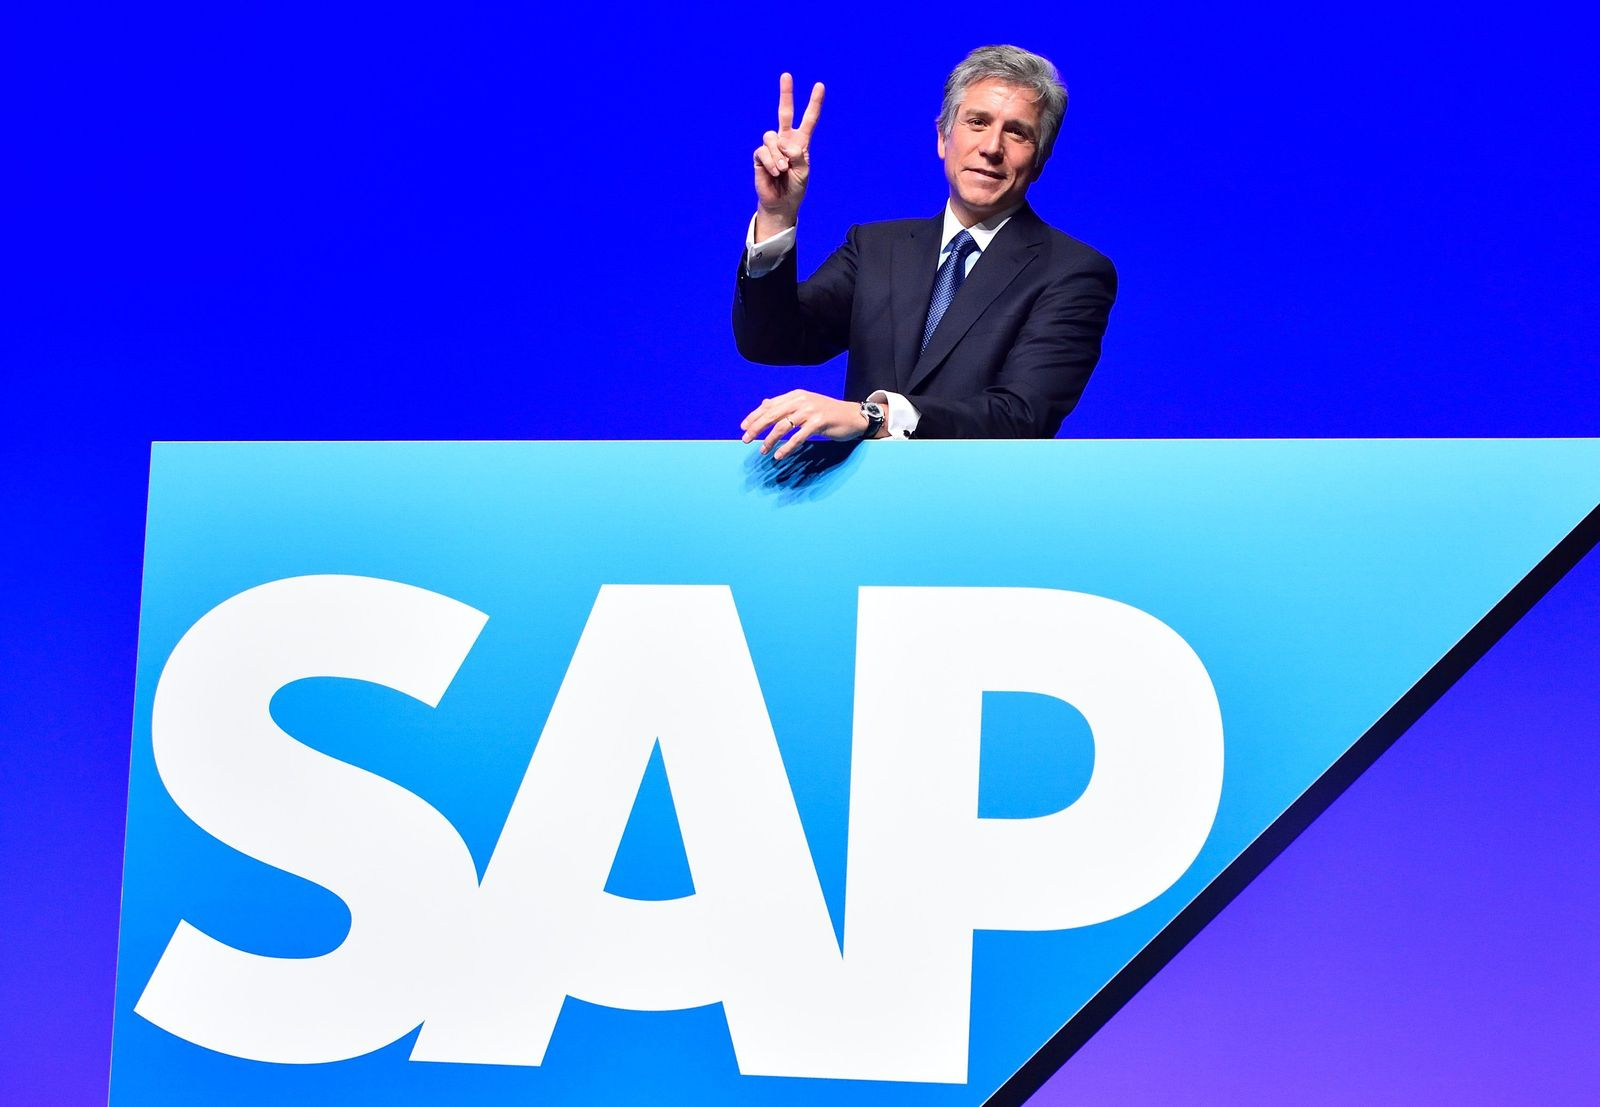 SAP / Bill McDermott